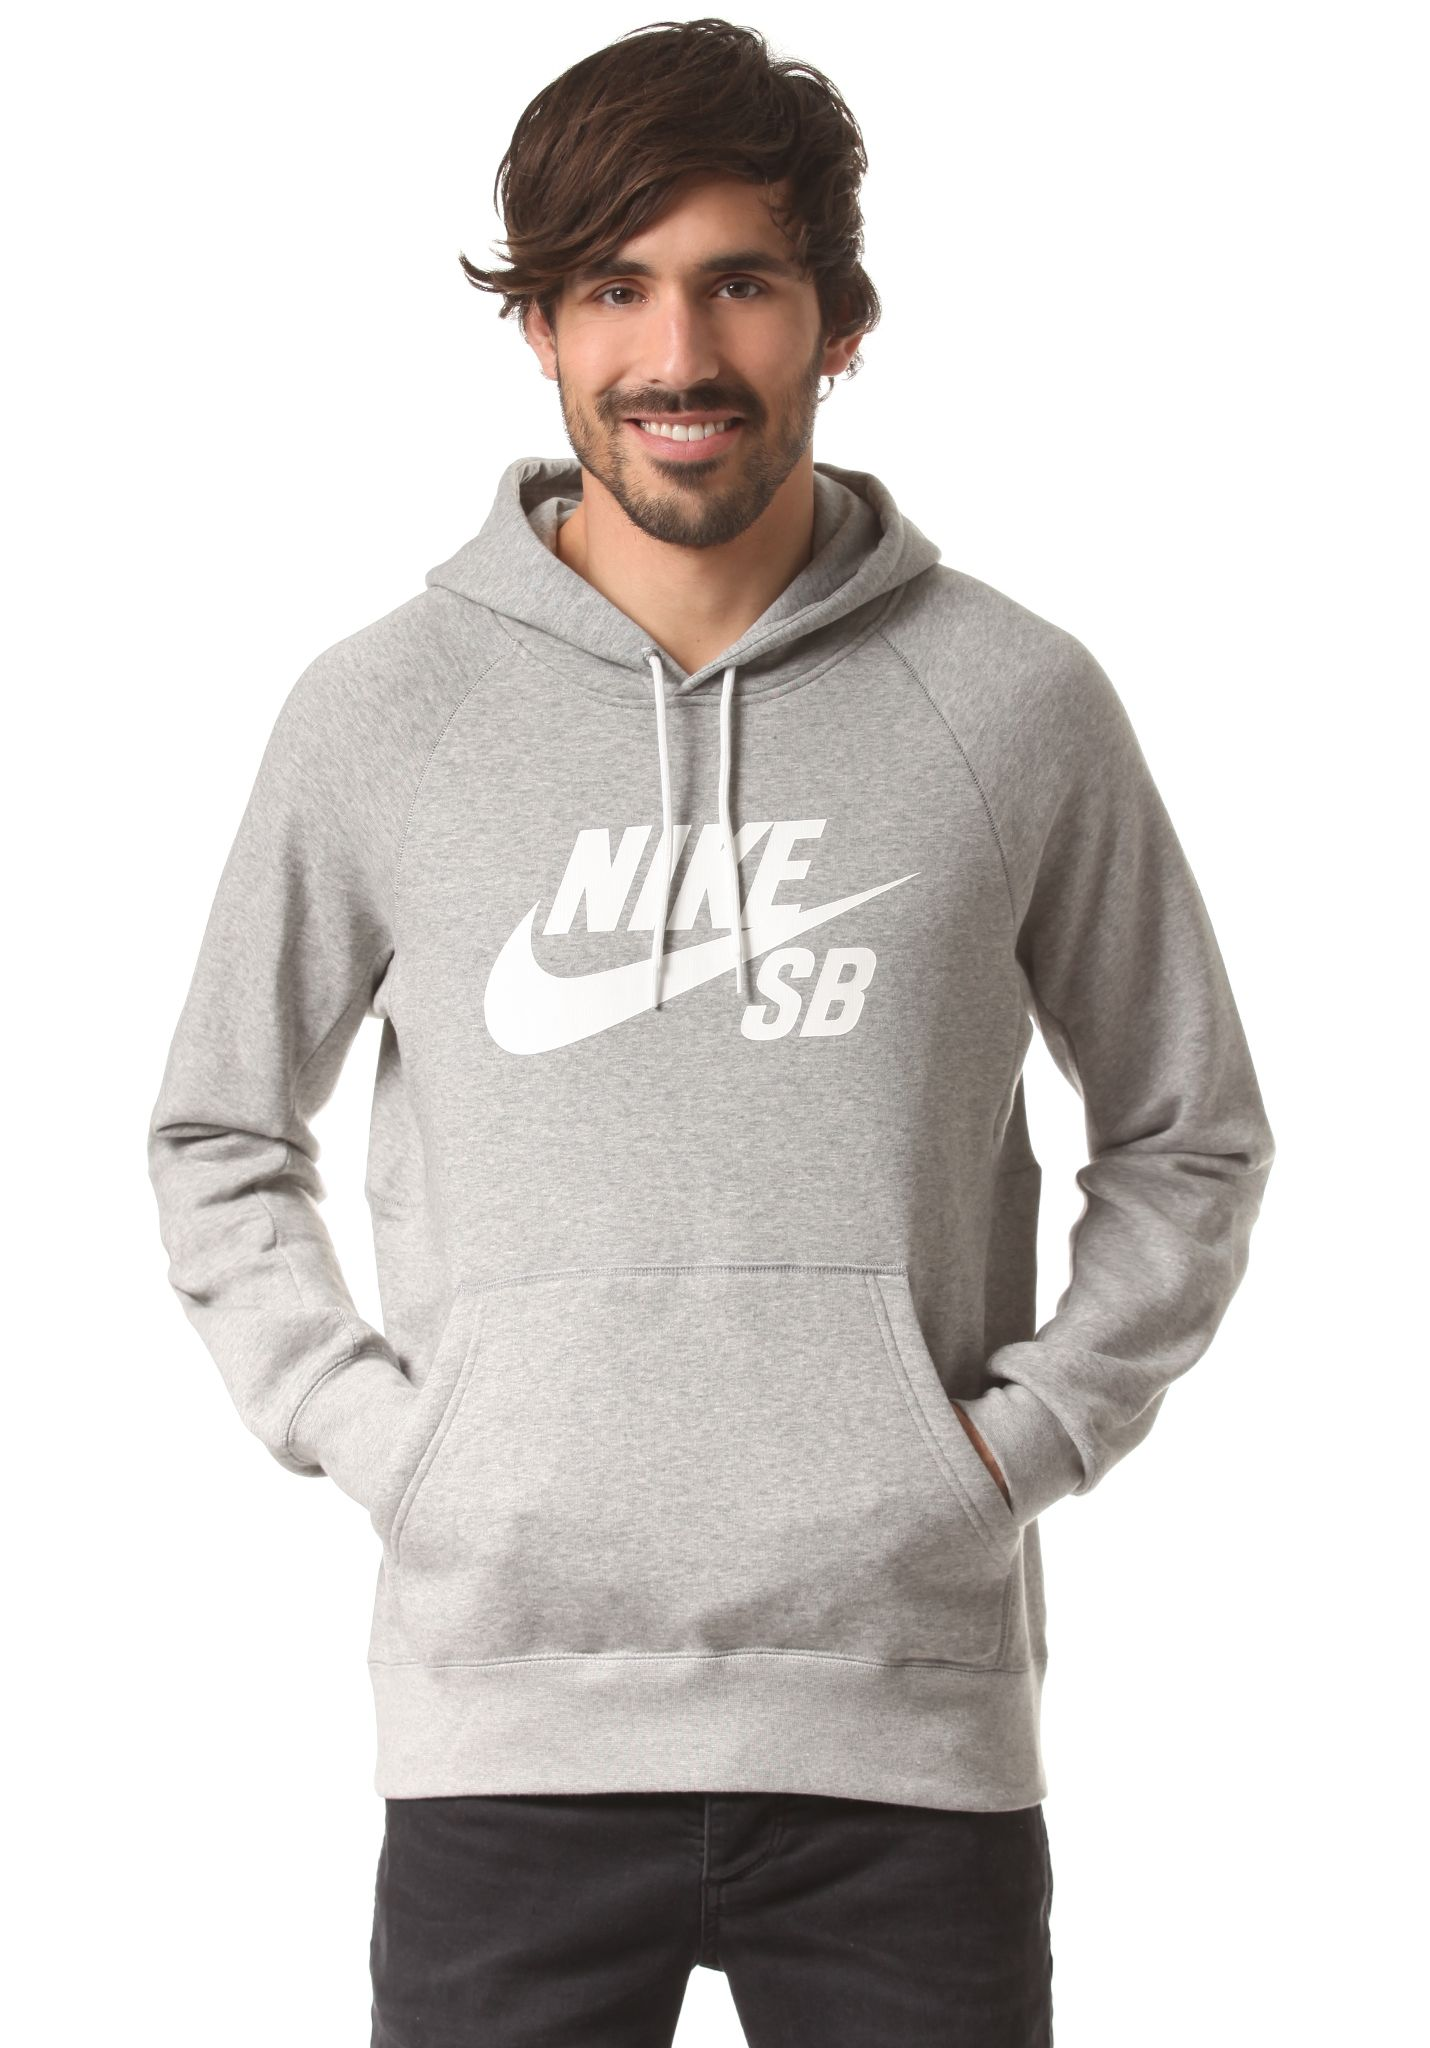 Nike Icon Pour Sweat À Sb Capuche Sports Homme Fleece Gris Planet Pxqrf4xw